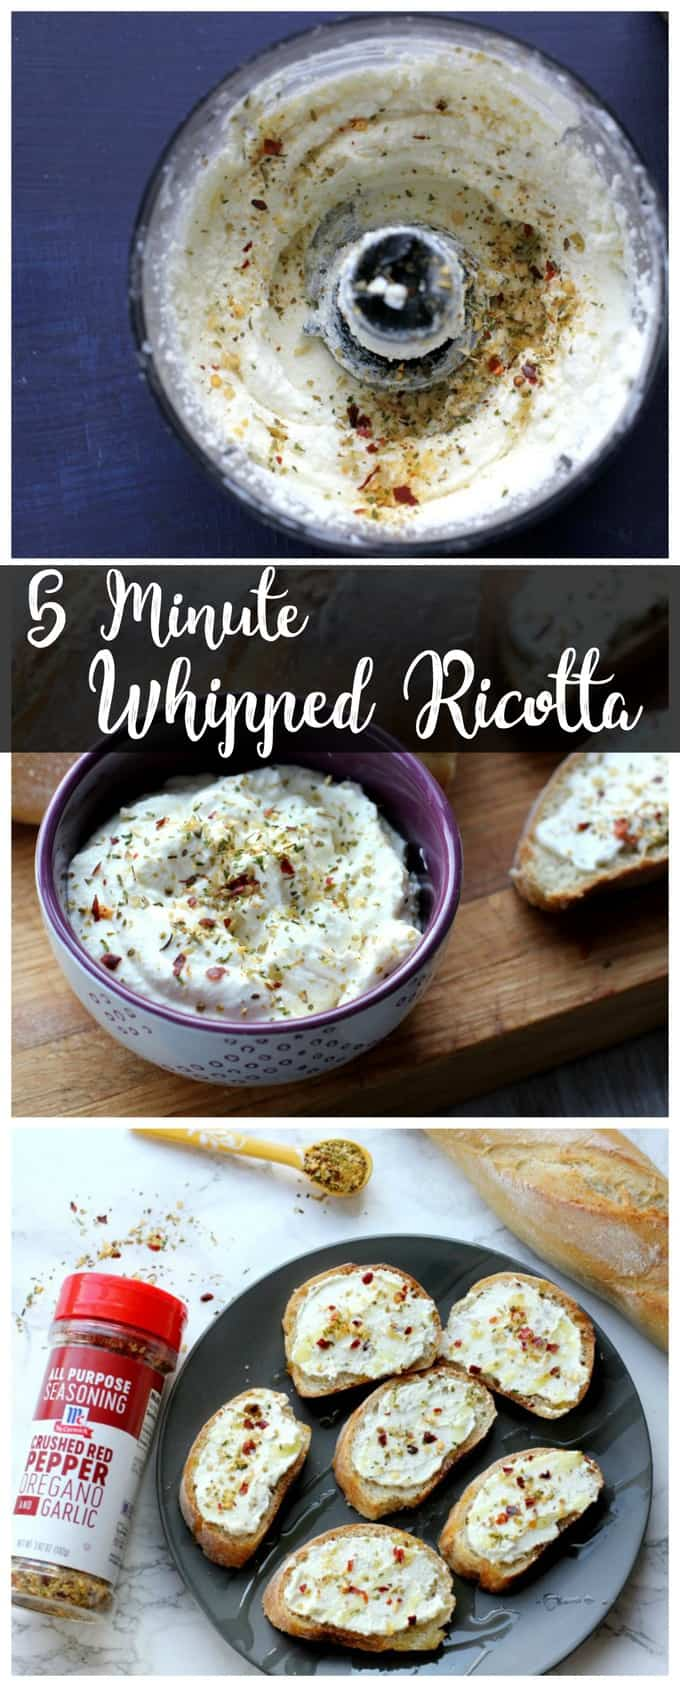 This 5 minute whipped ricotta is a quick and easy appetizer! It's perfect spread on a slice of a crusty baguette!